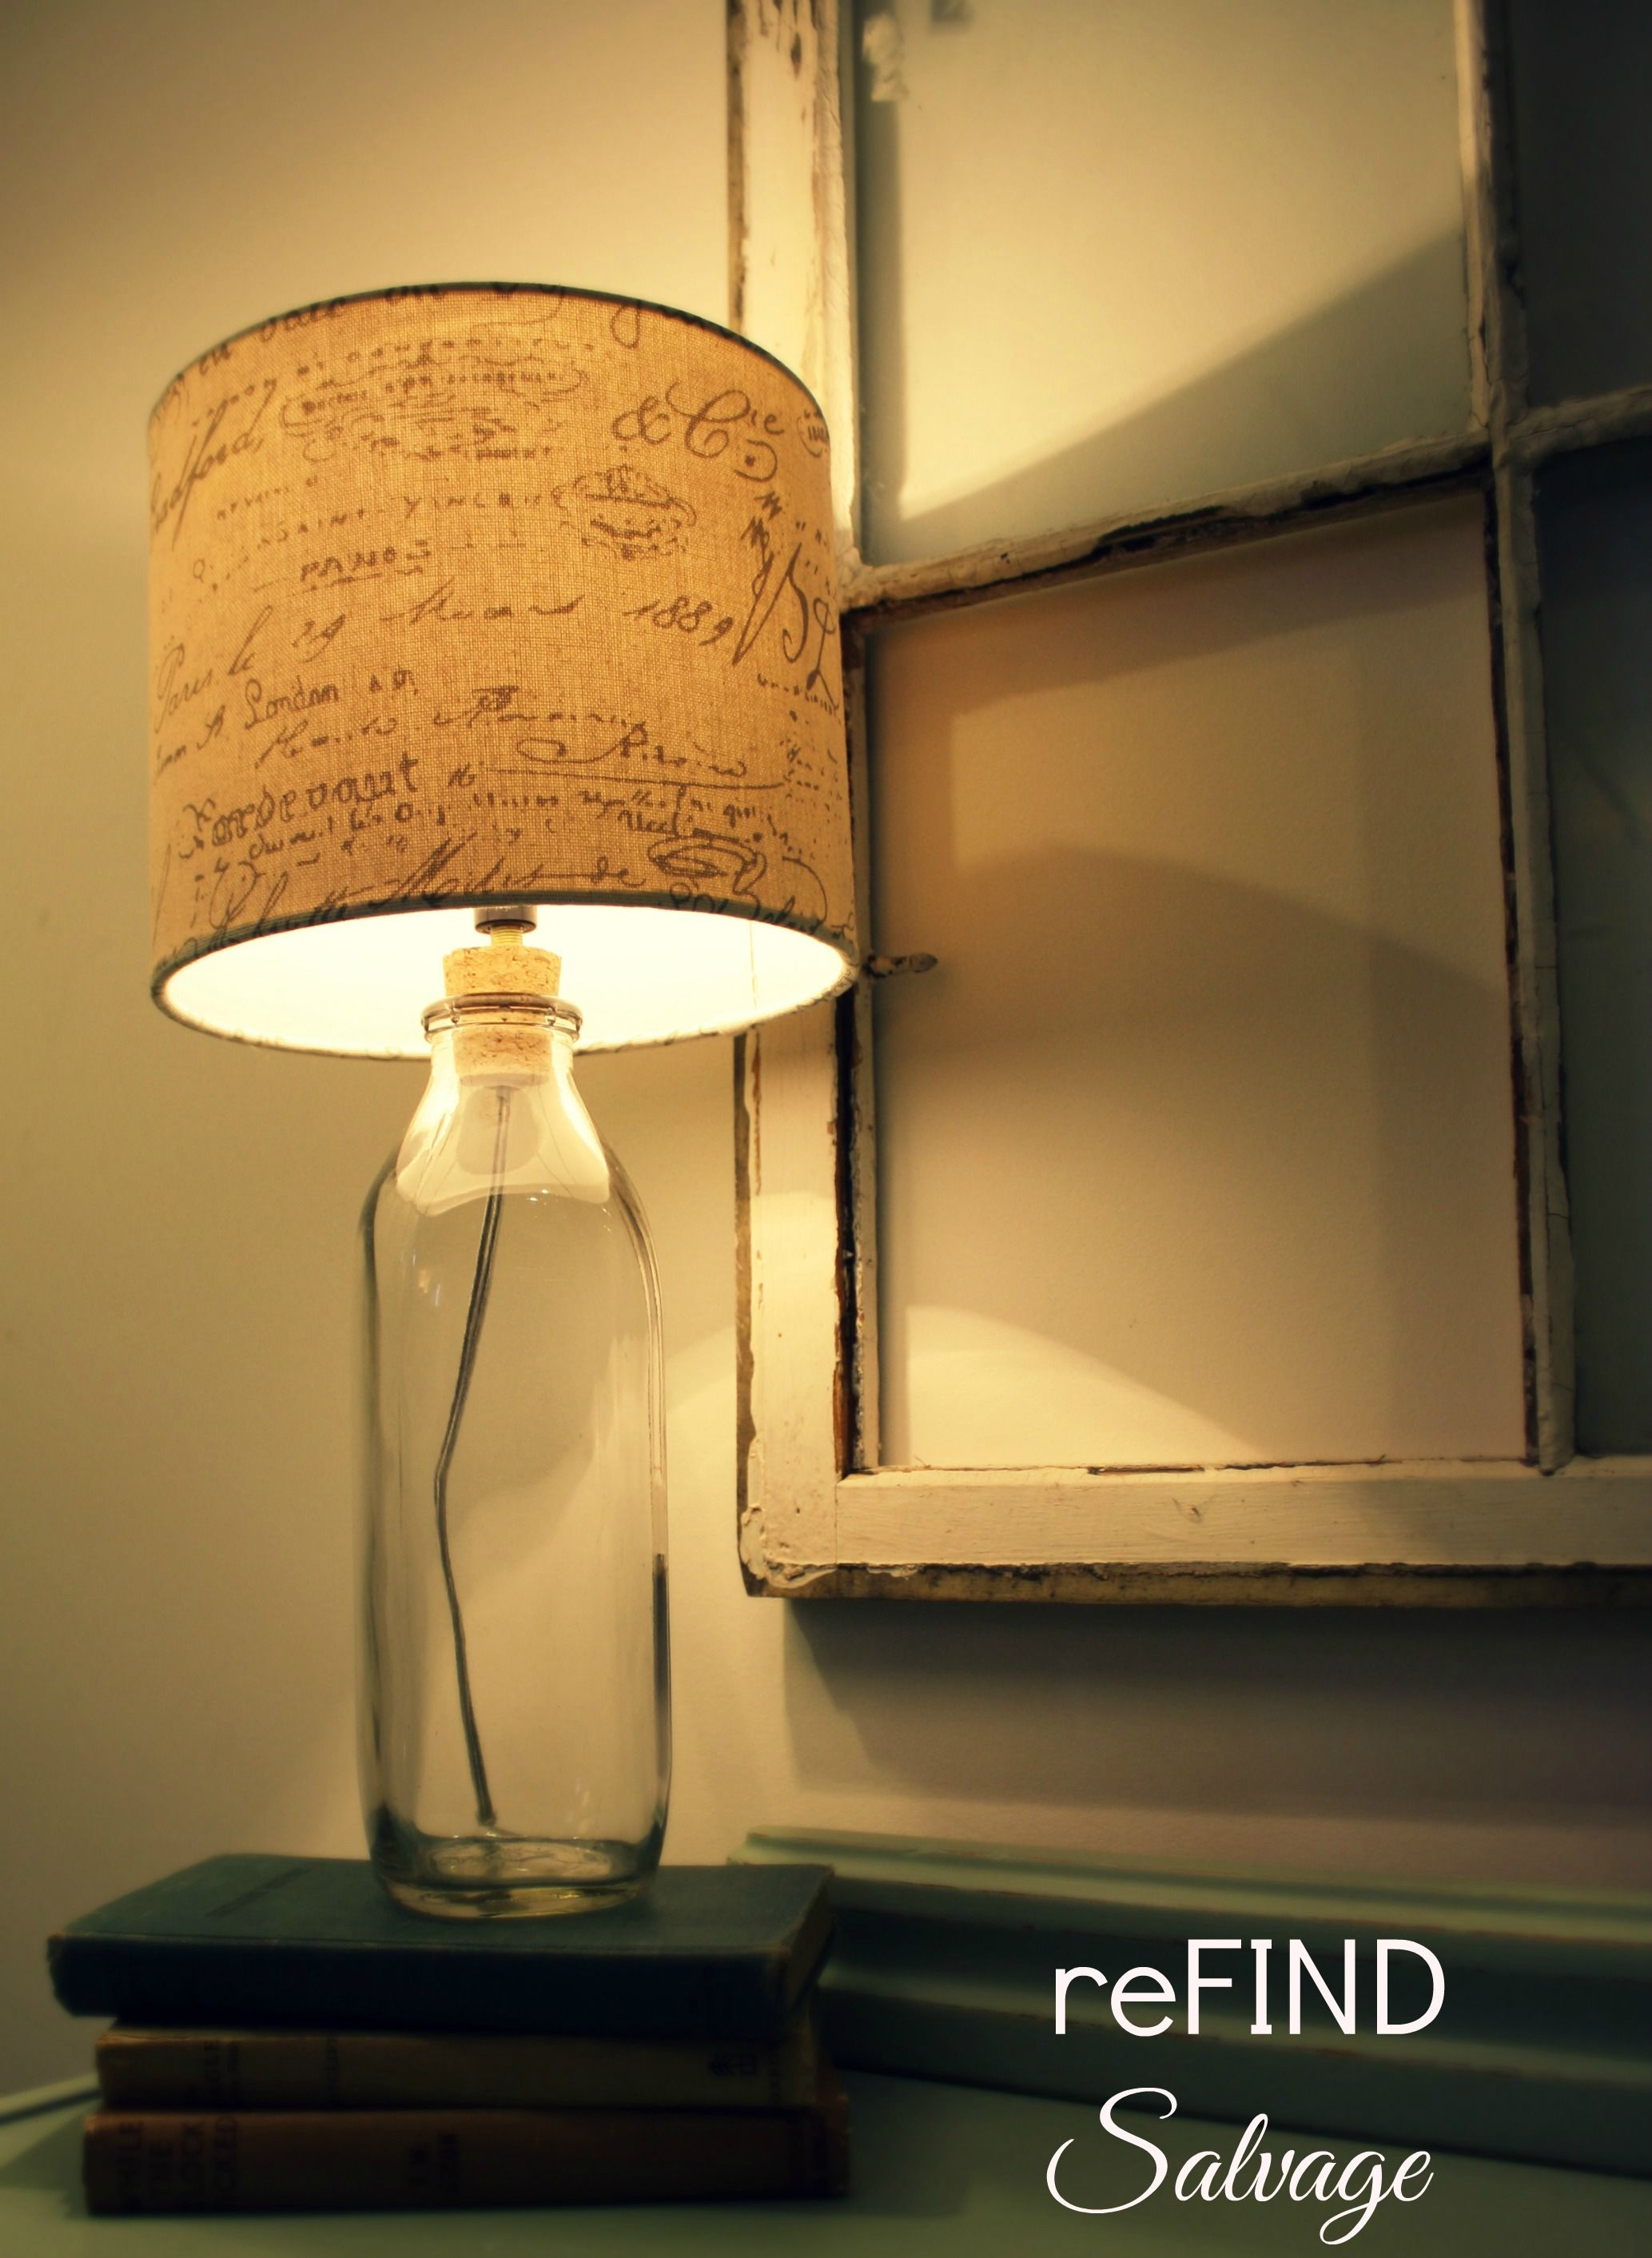 Upcycled Vintage Milk Bottle Table Lamp With Romantic Linen French Script Lampshade With Images Vintage Milk Bottles Bottle Lamp Milk Bottle Diy